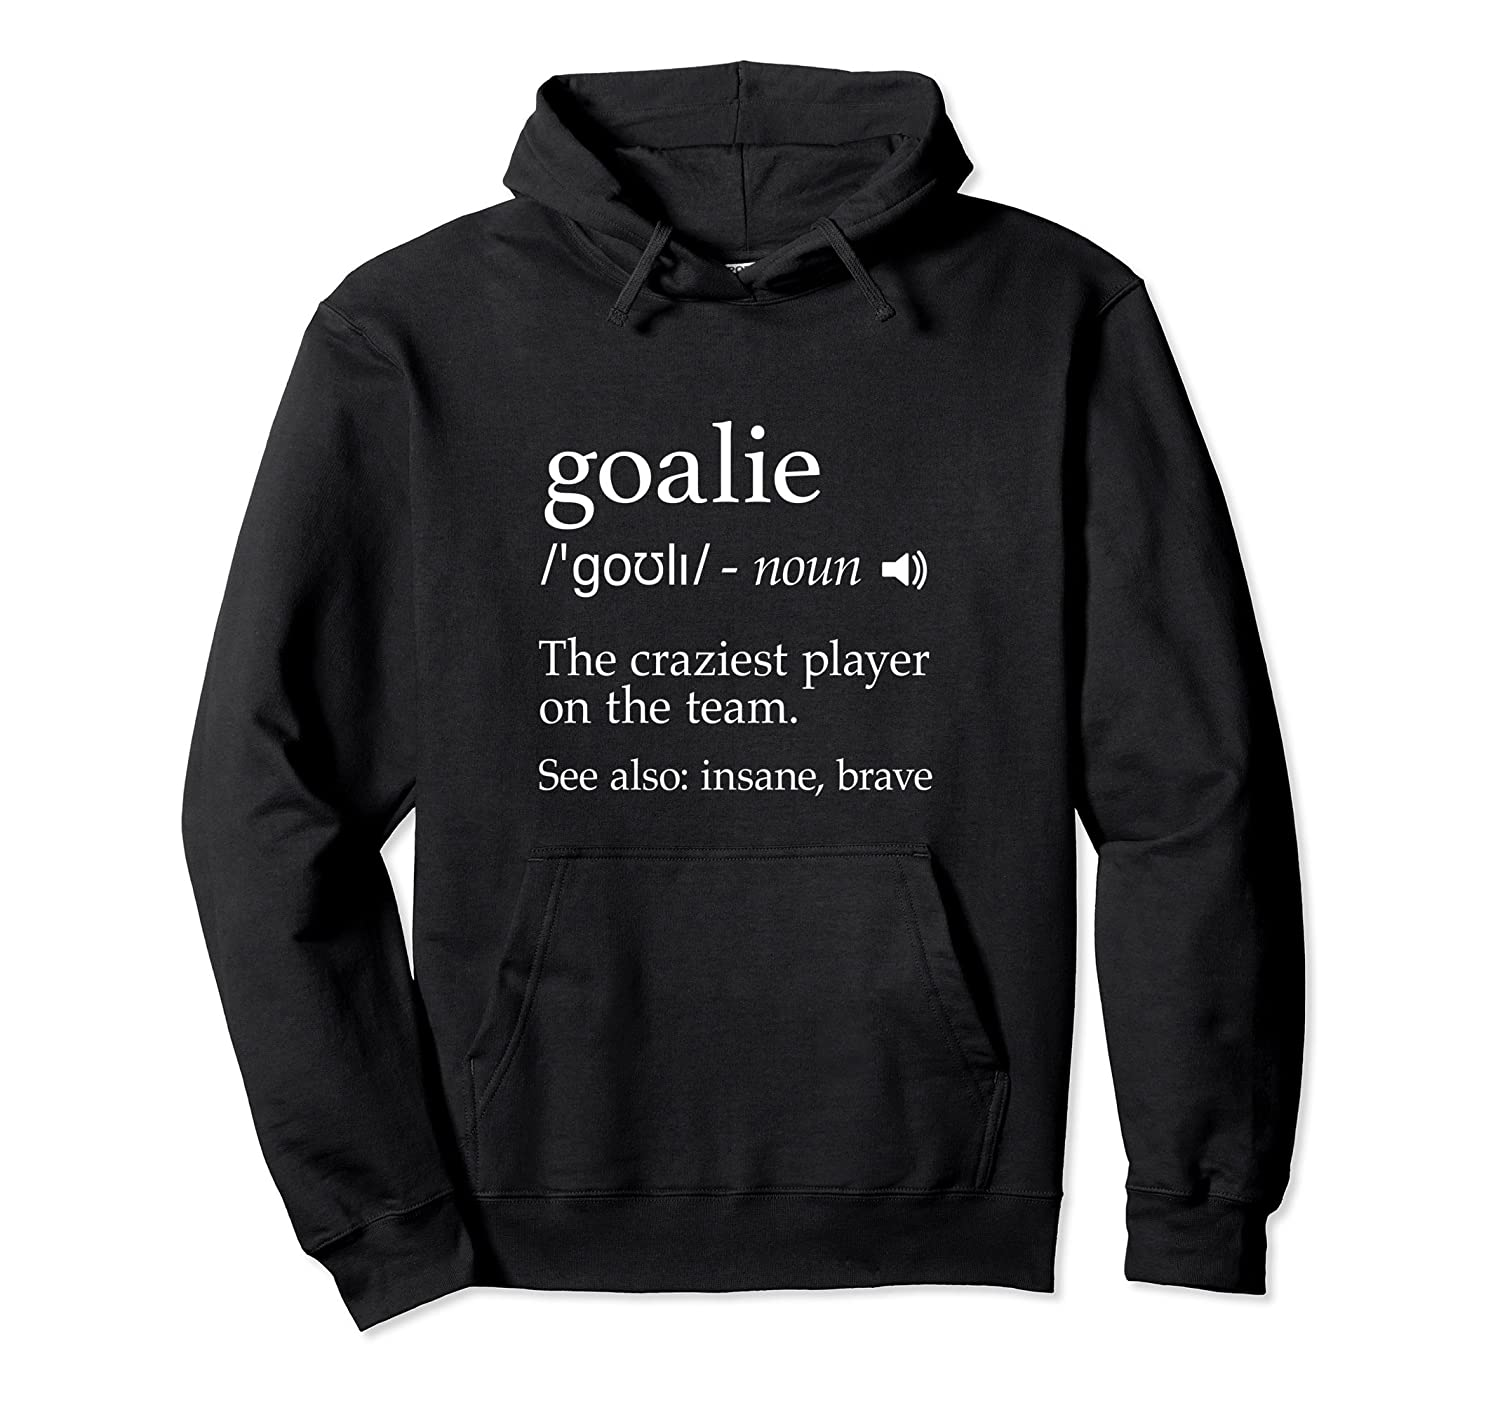 Goalie Definition Hoodie for Hockey, Soccer, Lacrosse Goalie